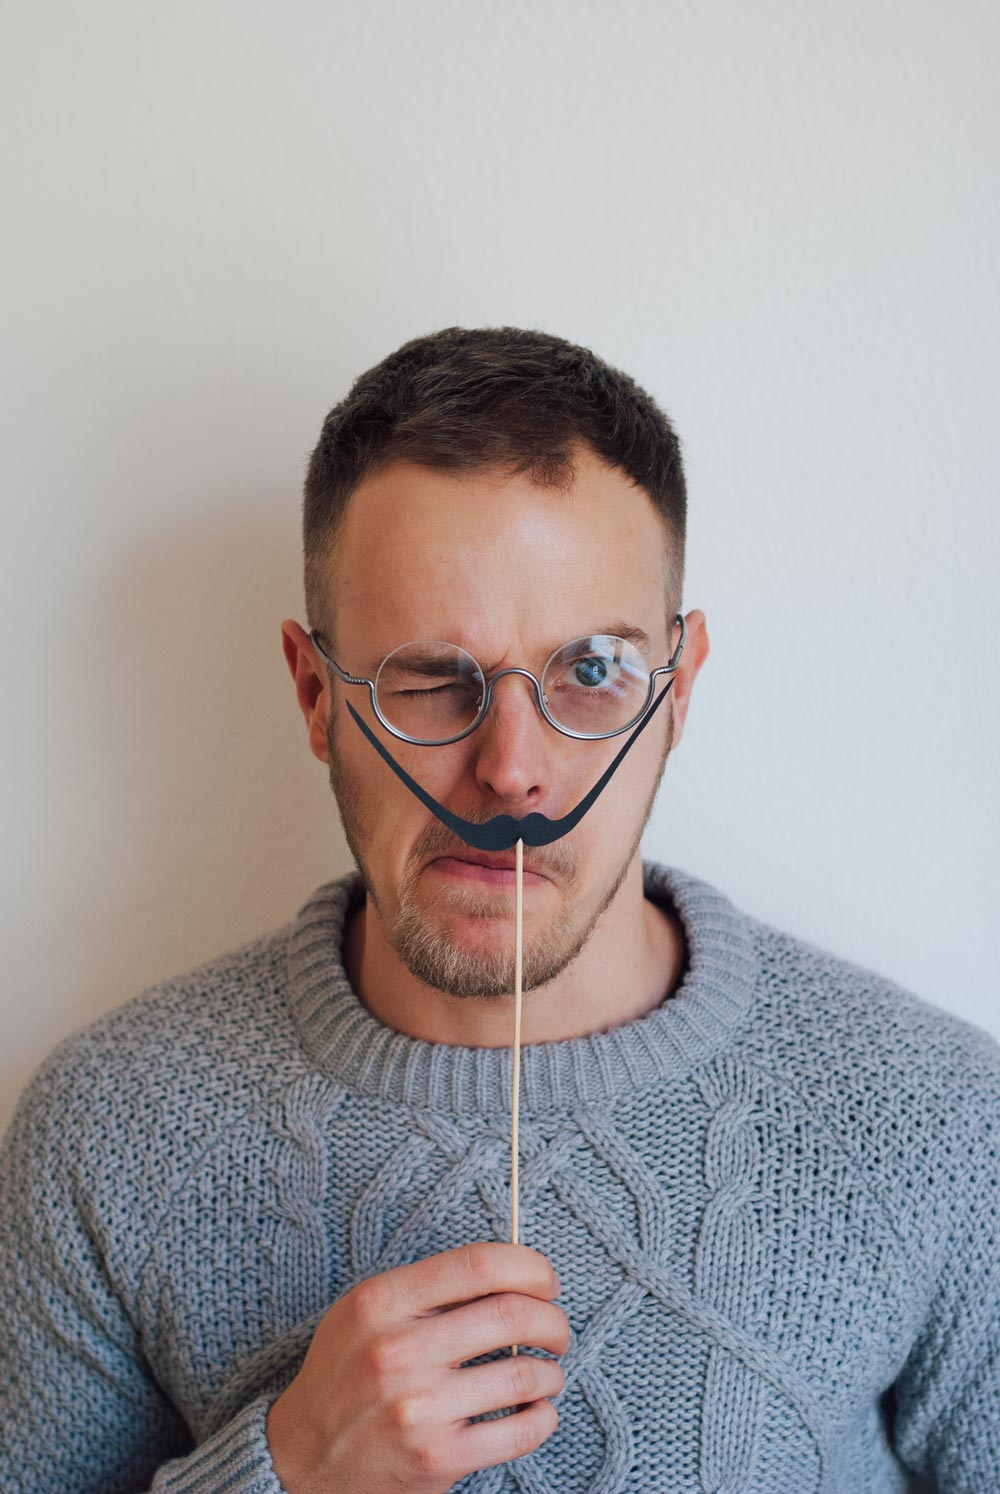 a14d34d17 Best 5 Movember styling ideas: Glasses x Staches | eyerim blog